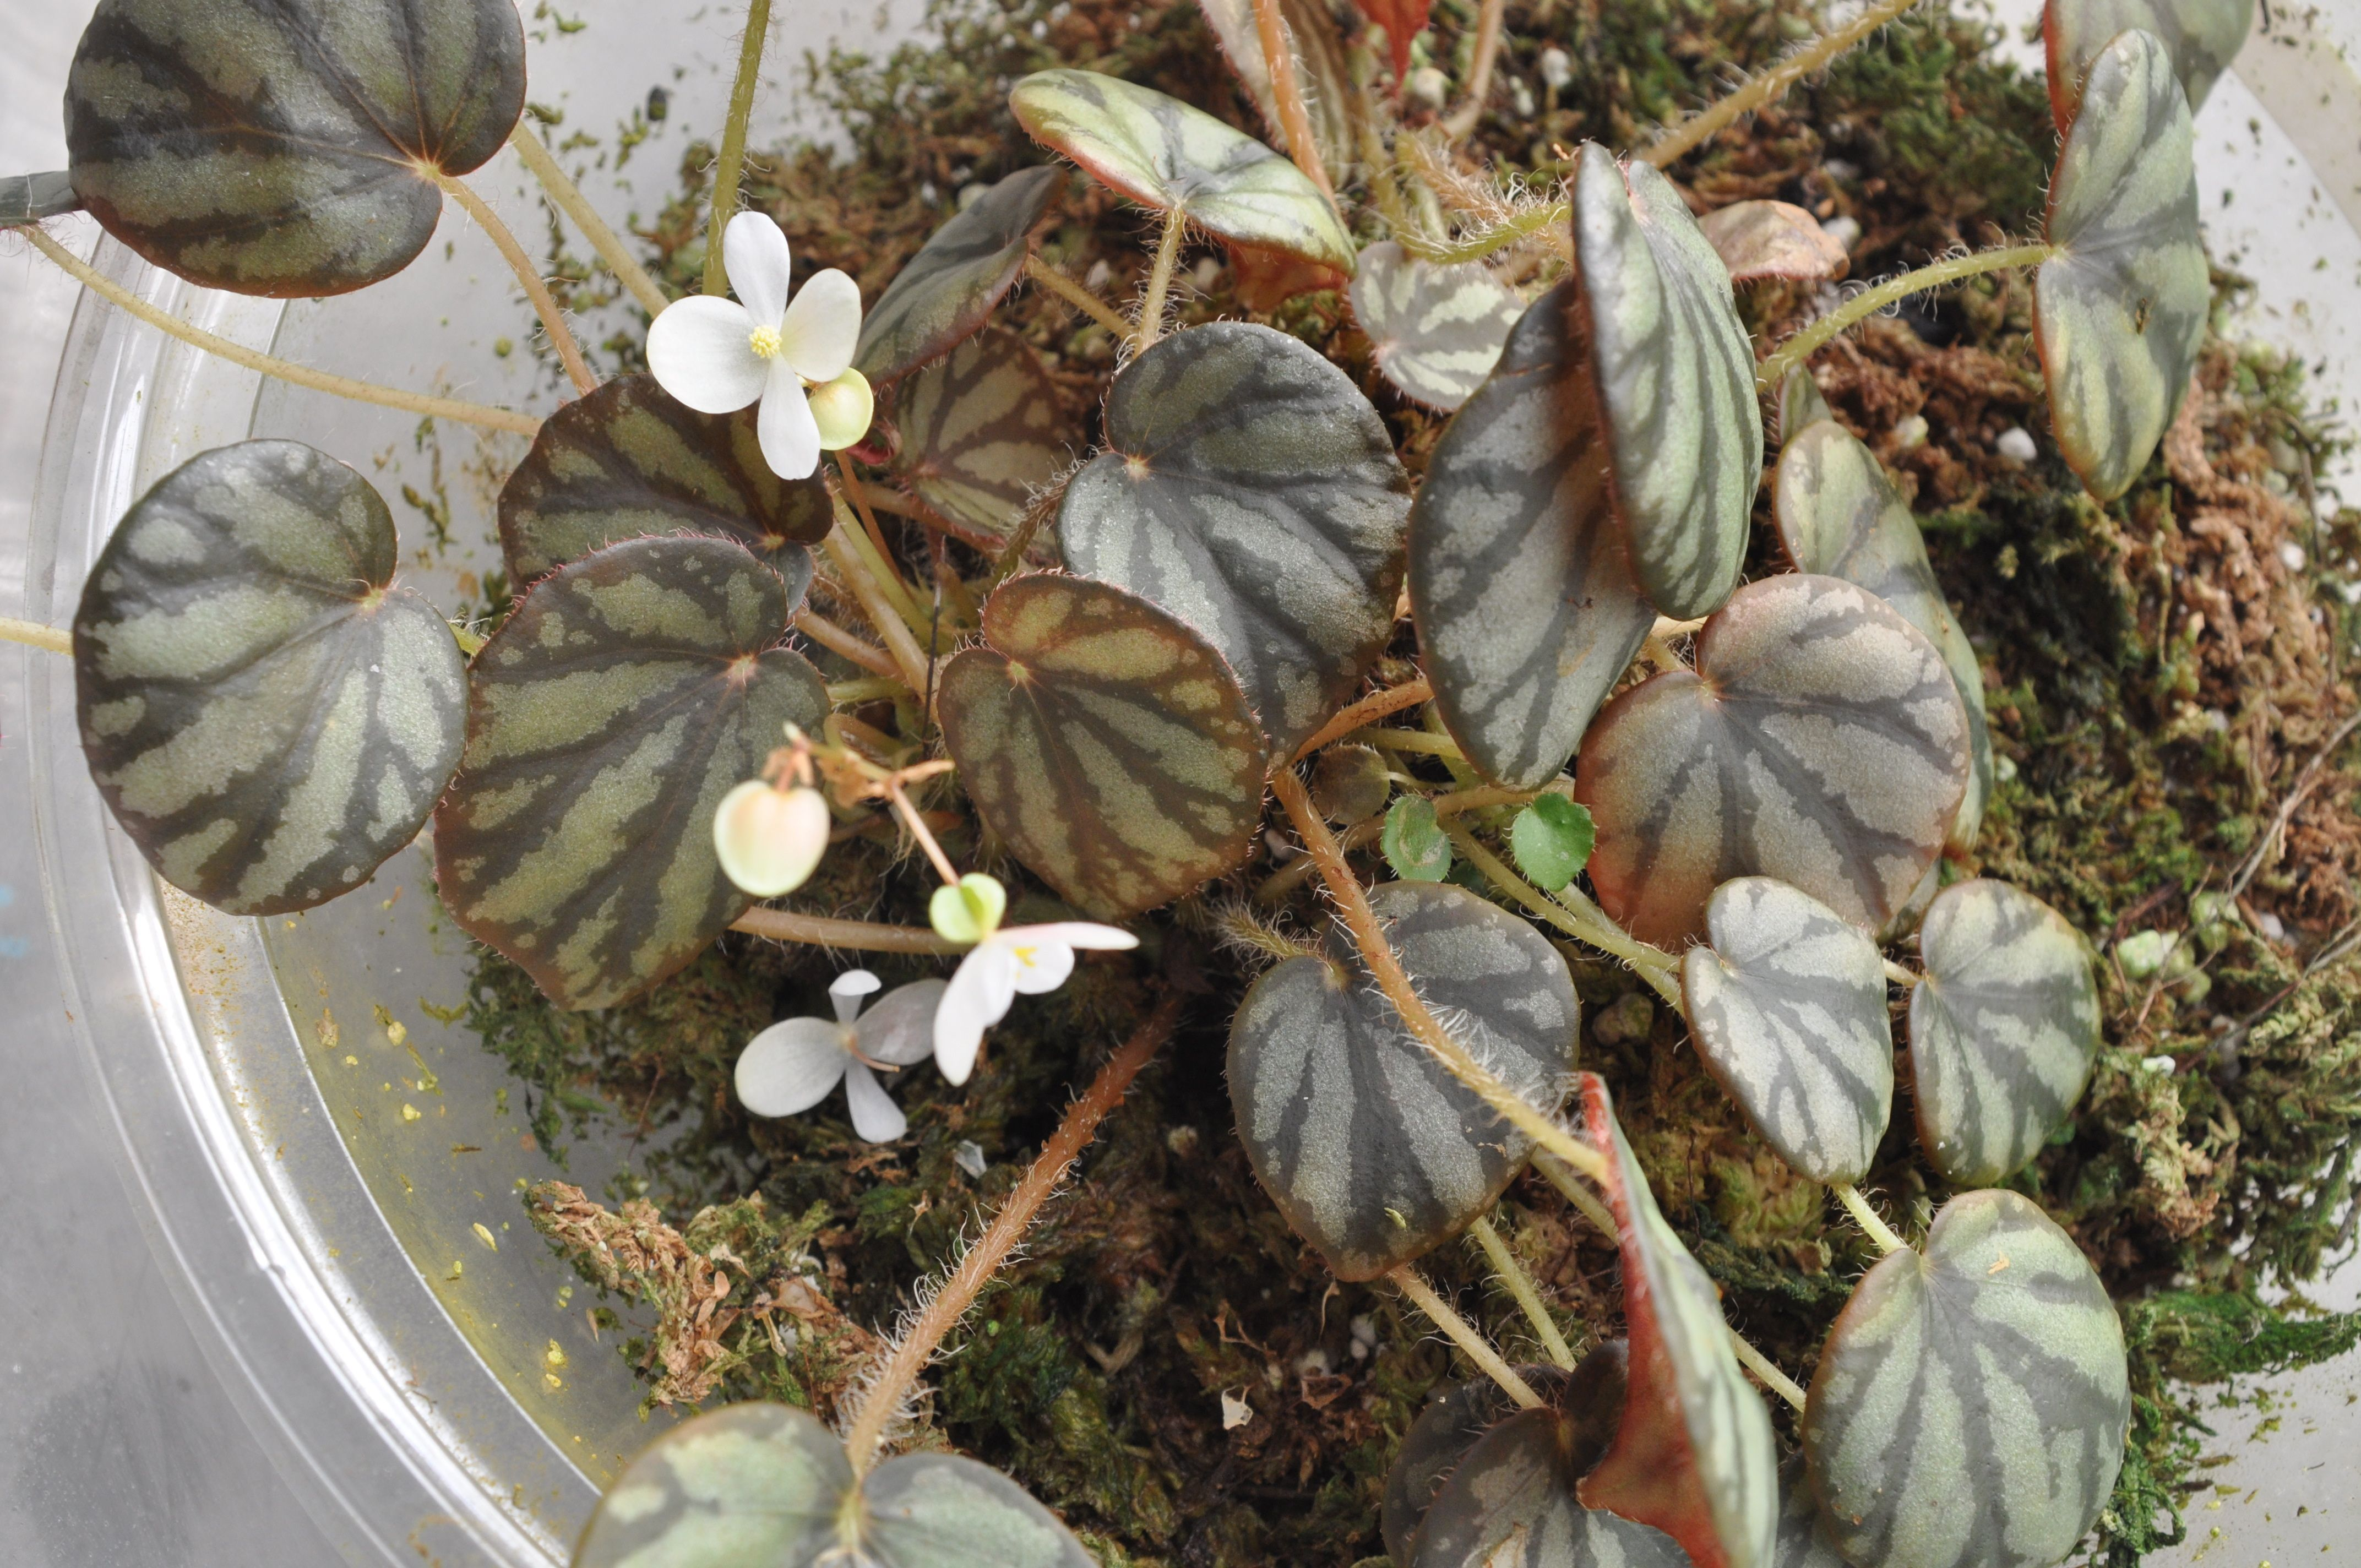 Begonia Luzonensis Is Beautiful Species From Luzon Philippines The Leaves Are Small And It Makes An Ideal Terrarium Plant It Plants Begonia Terrarium Plants